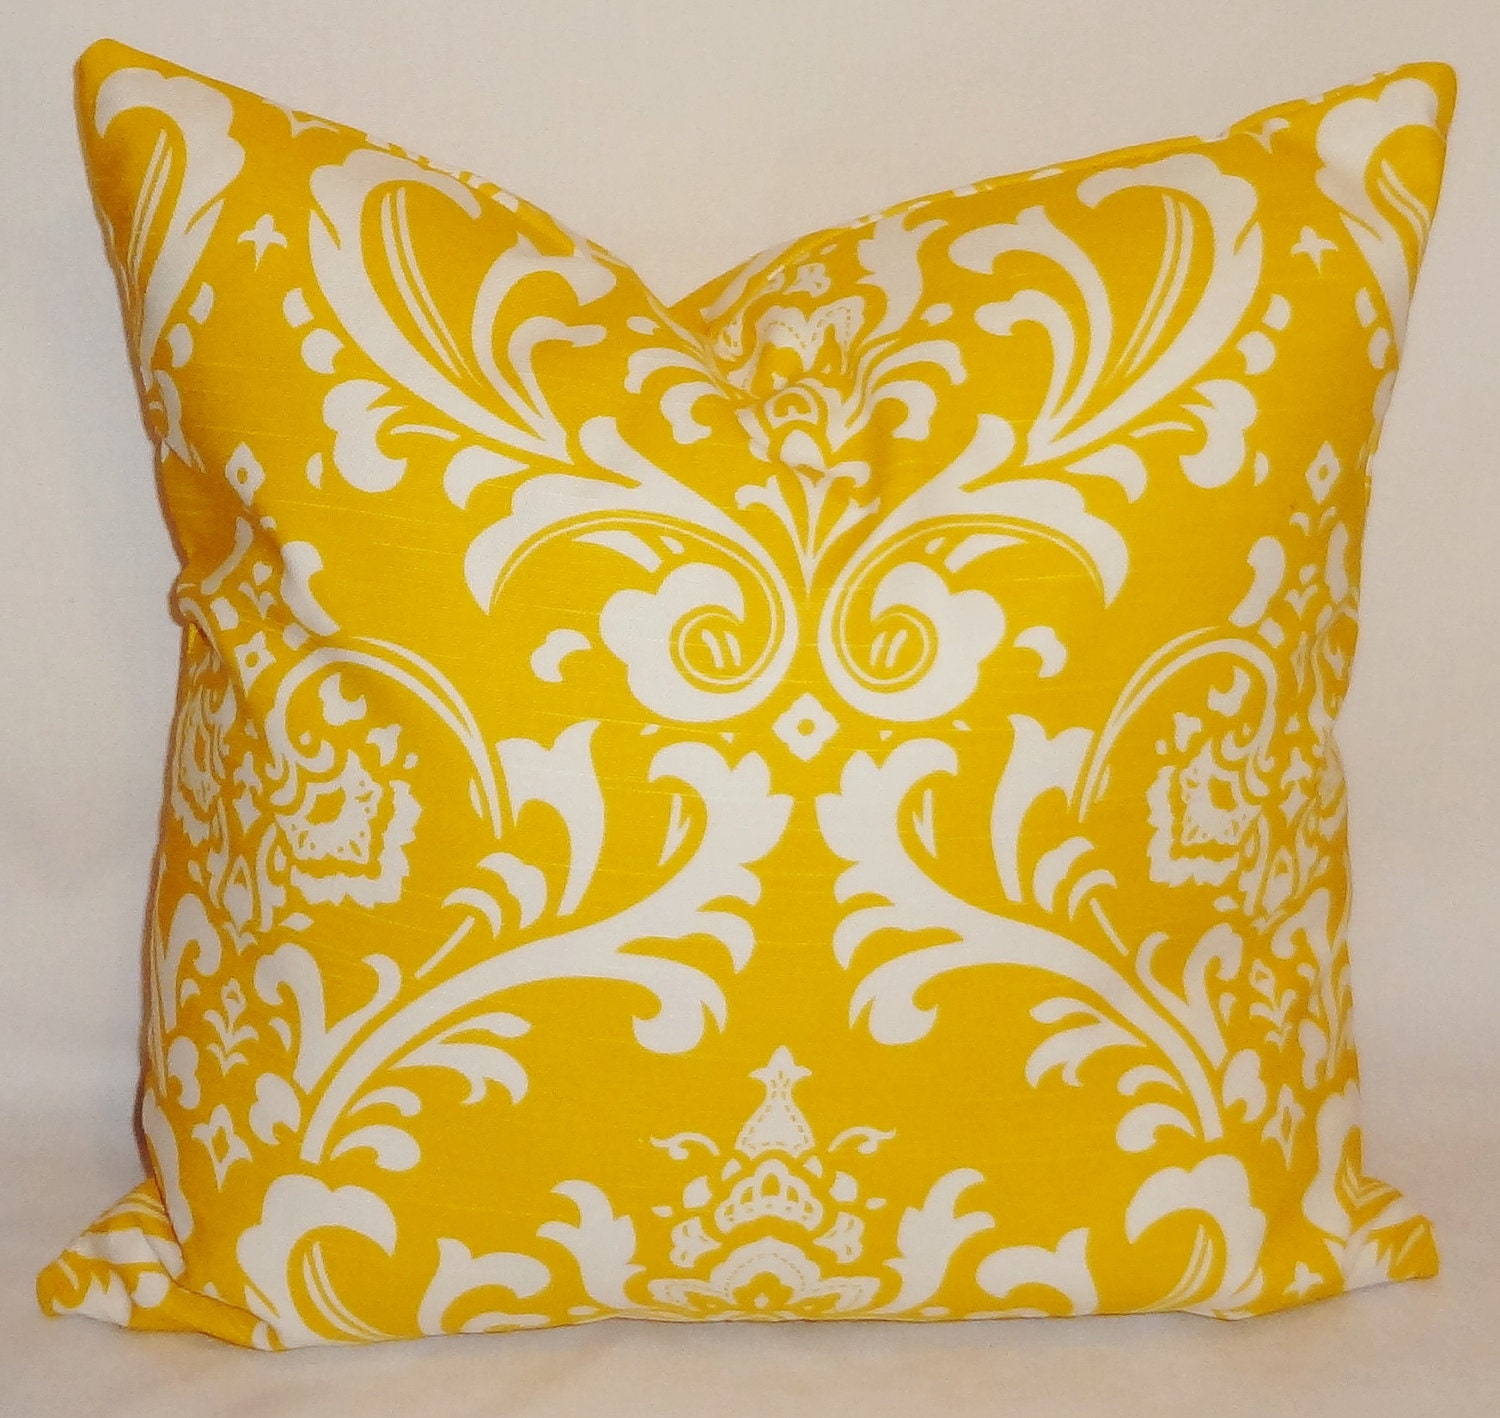 Decorative Pillow Yellow : Decorative Pillows Corn Yellow & White Damask Pillow by HomeLiving